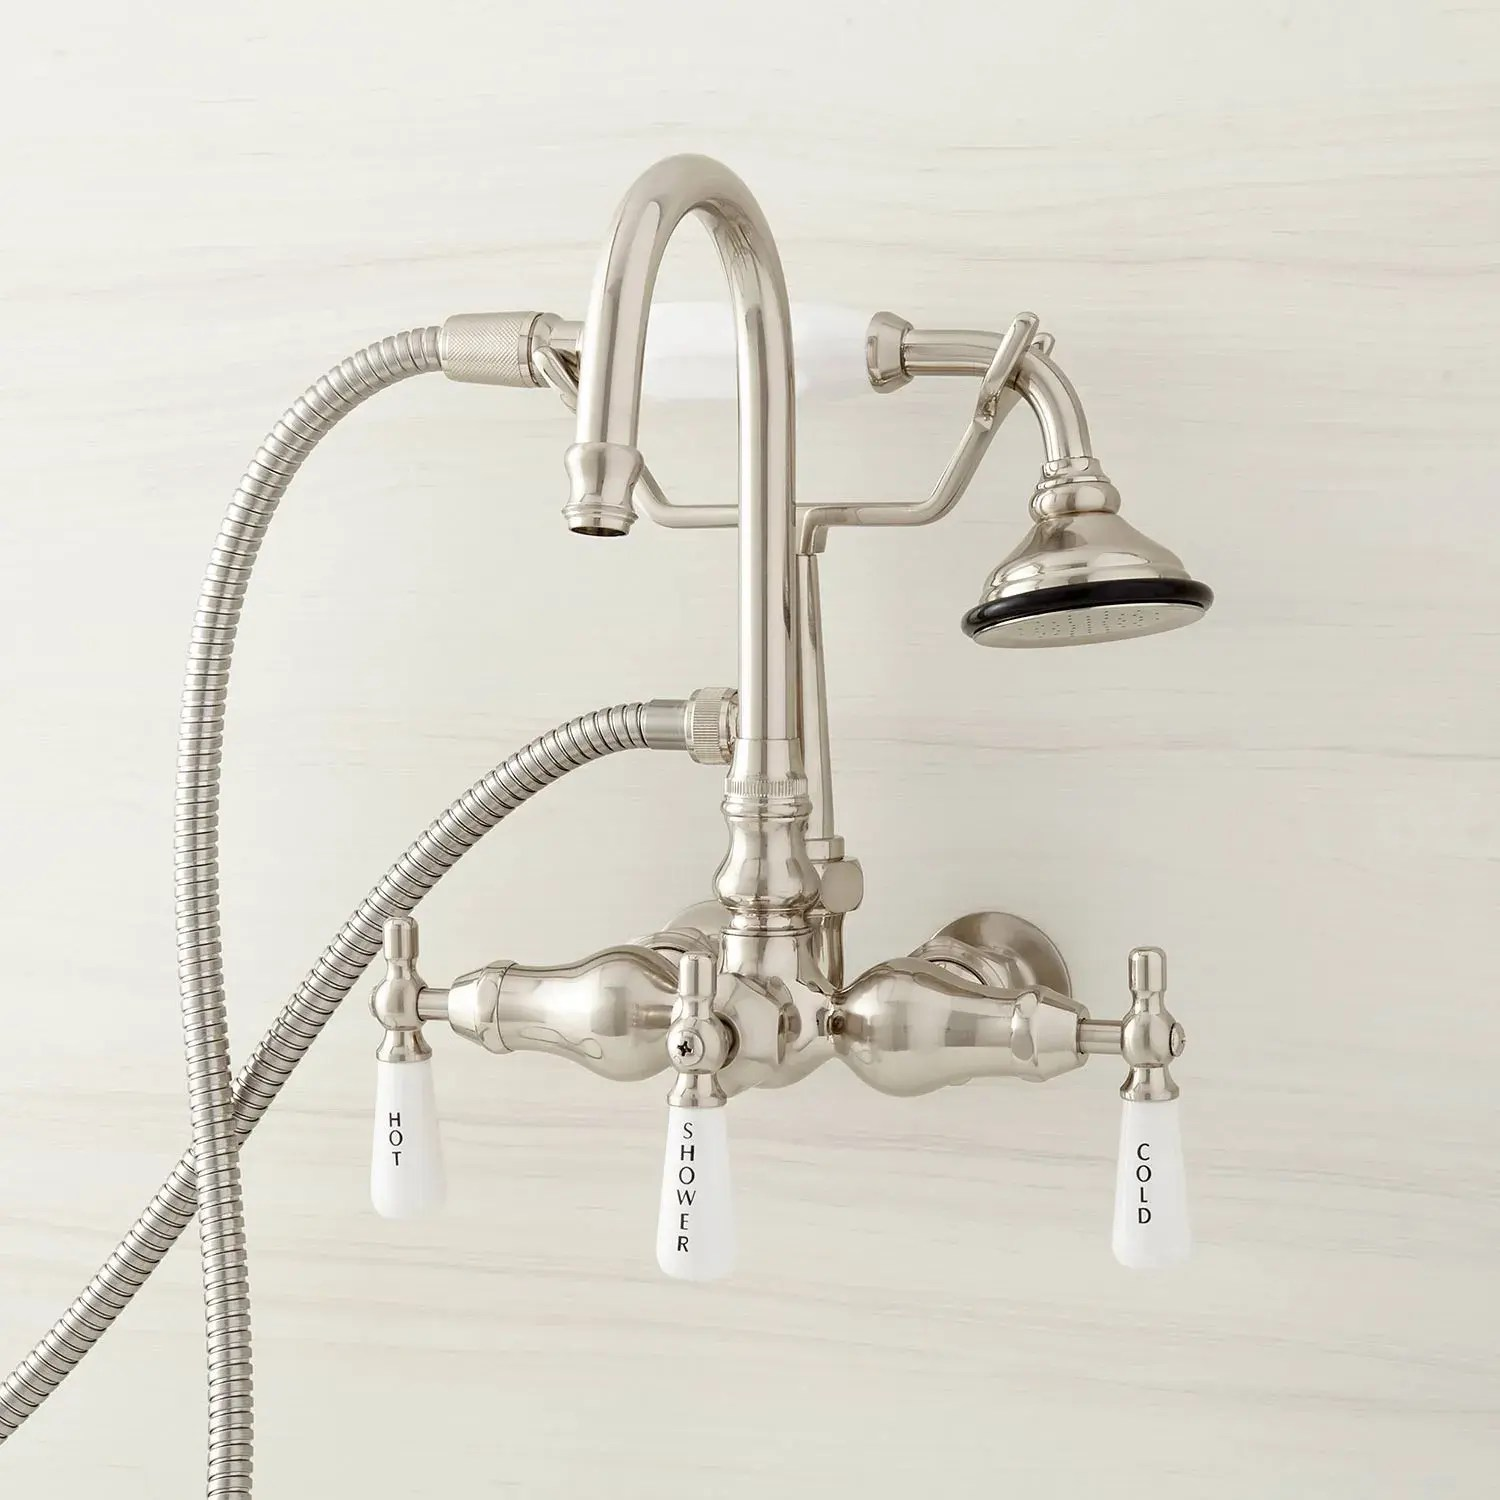 gooseneck tub faucet with hand shower and wall couplers